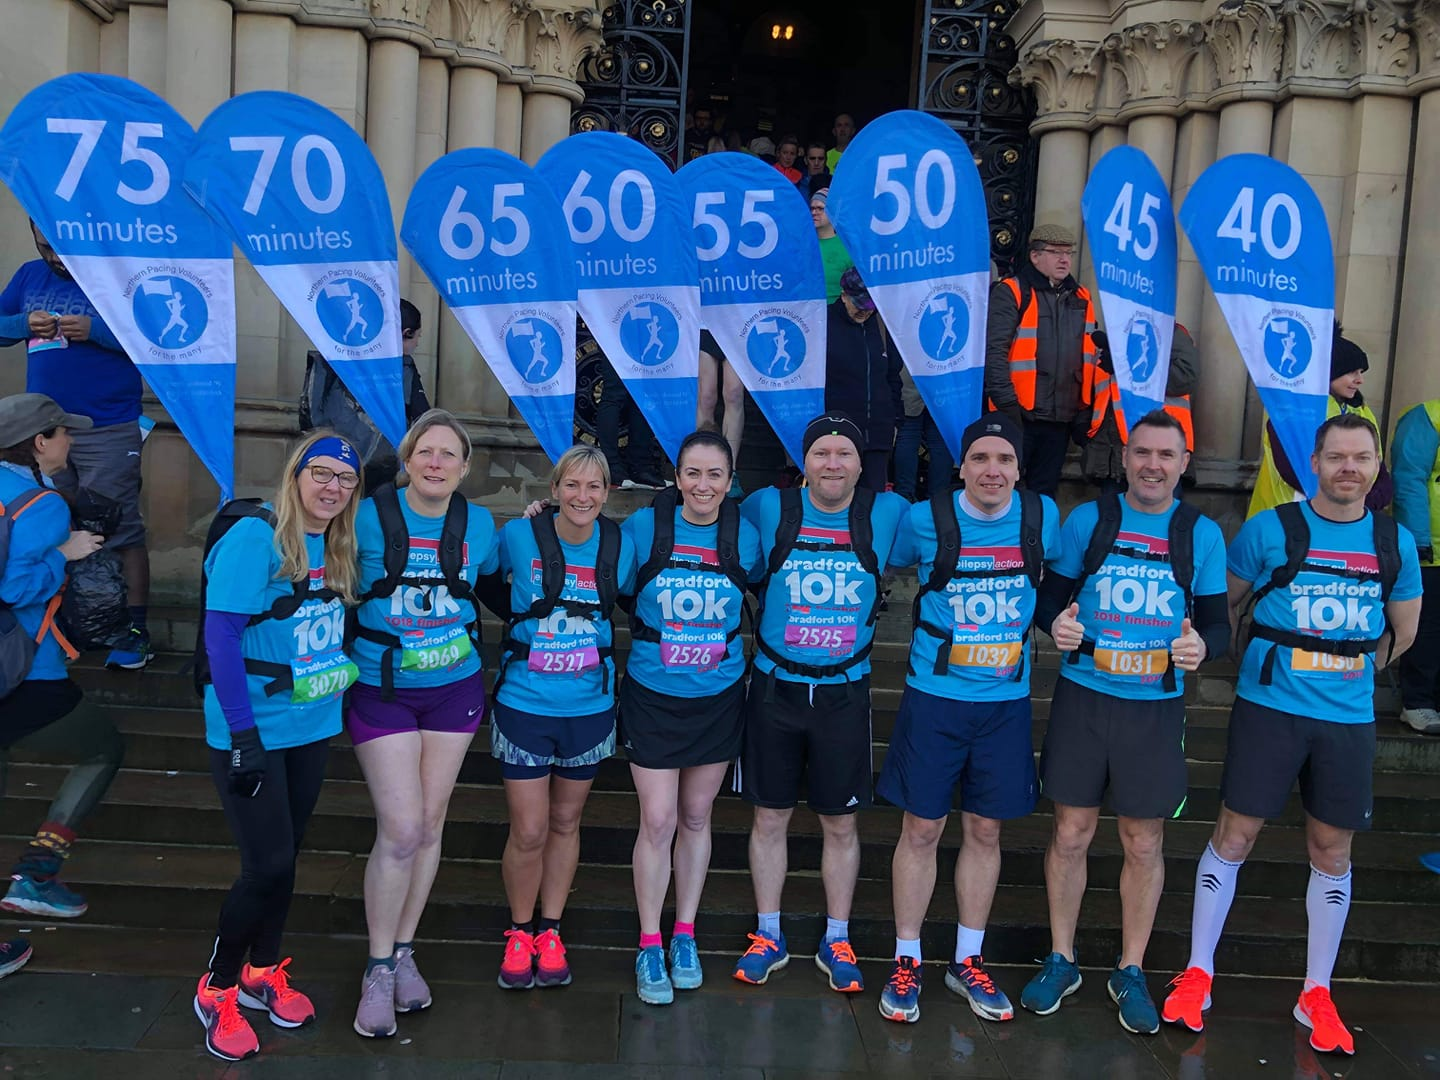 Northern Pacing Volunteers - A big shout out to Northern Pacing Volunteers, who will be pacing 1:10, 1:20, 1:30, 1:40 and 1:50.